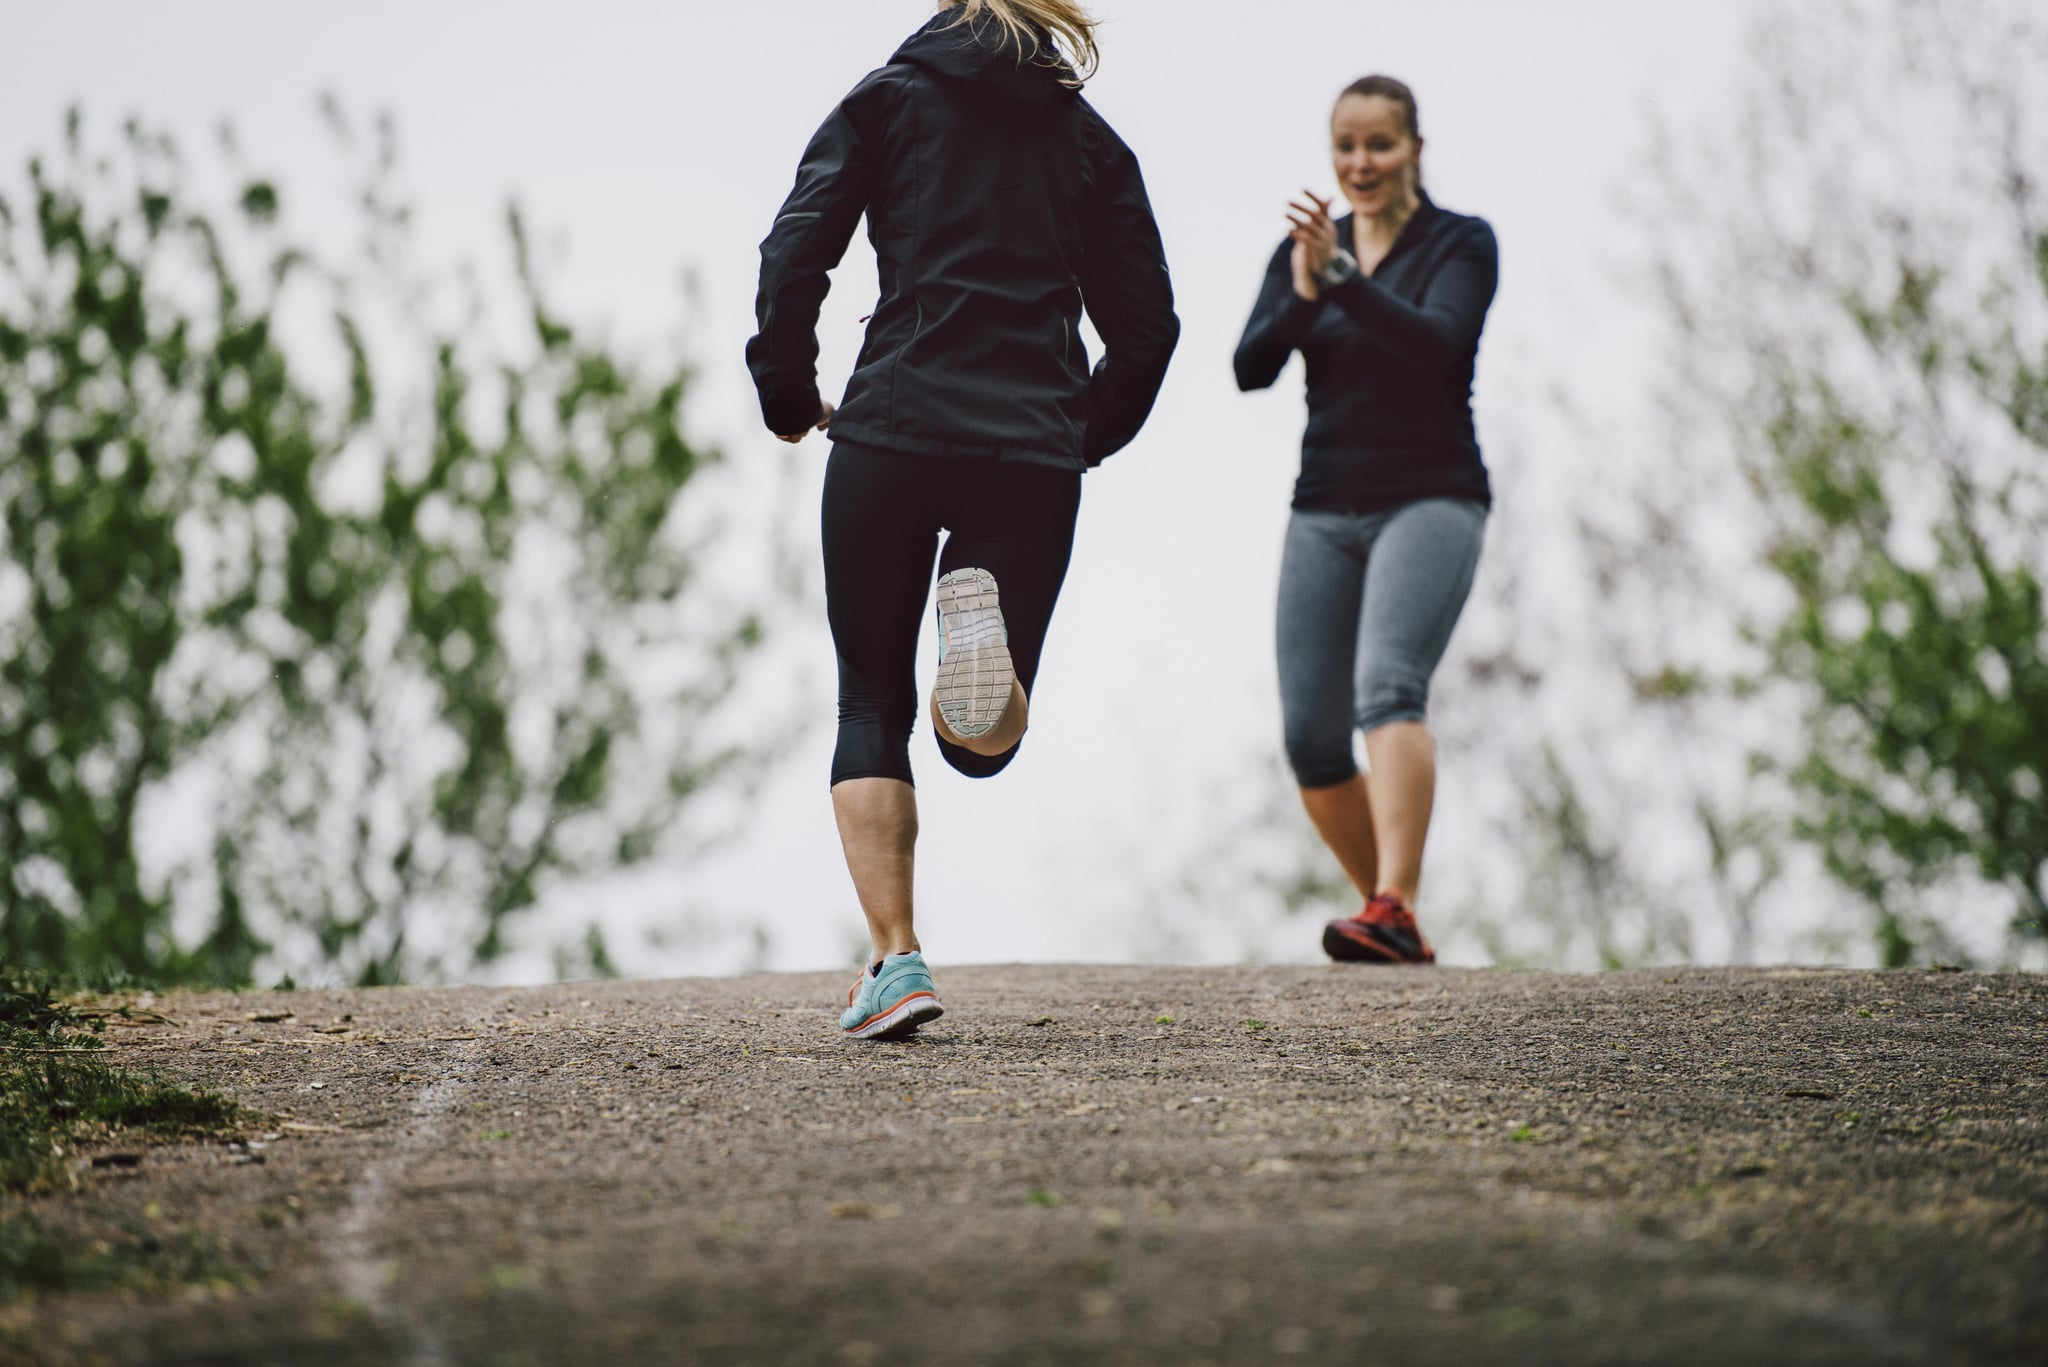 Women running together uphill in a park